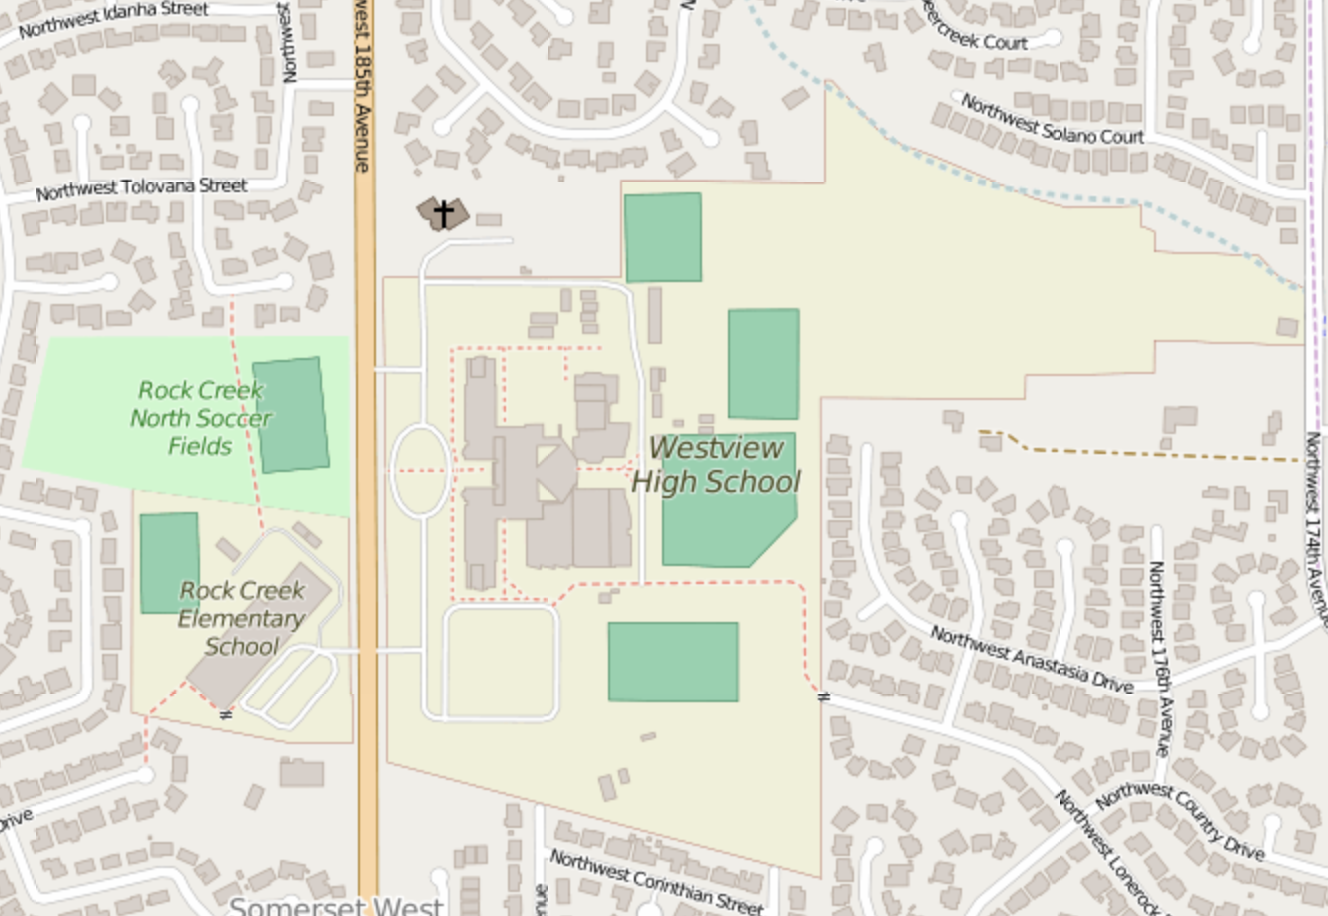 File:Westview High School map.png   Wikimedia Commons